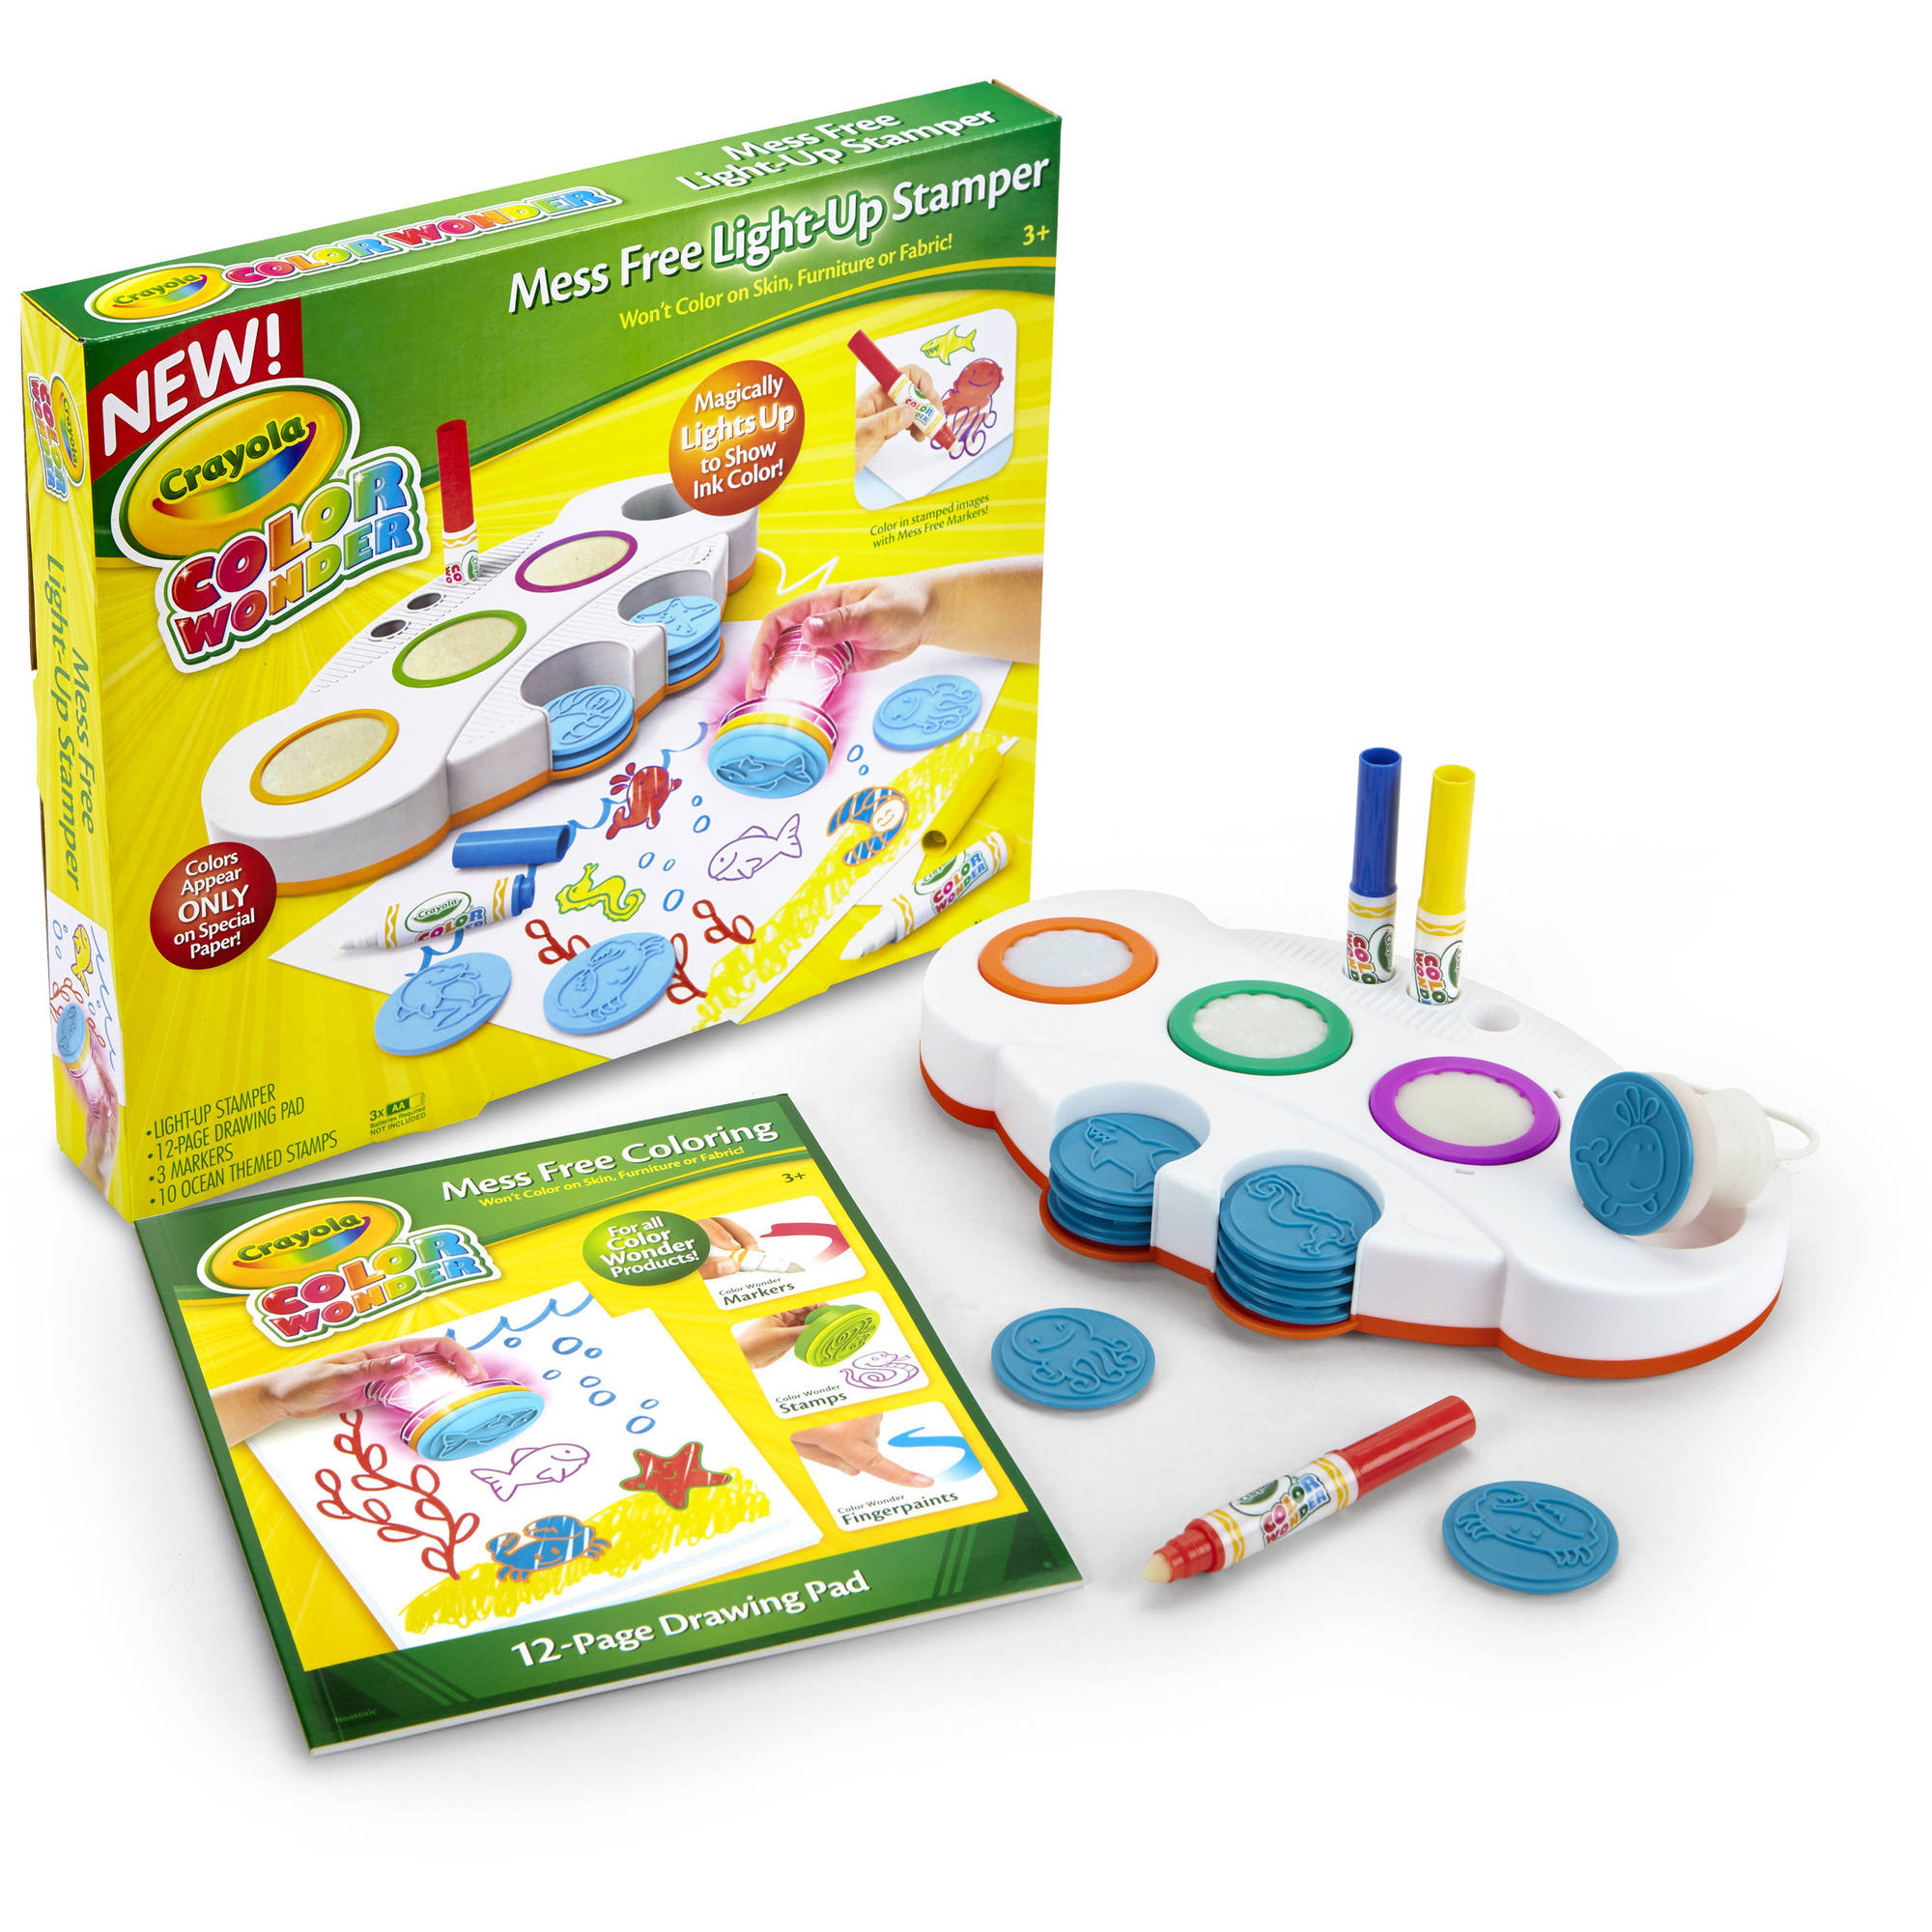 Crayola Magical Mess Free Light-Up Stamper